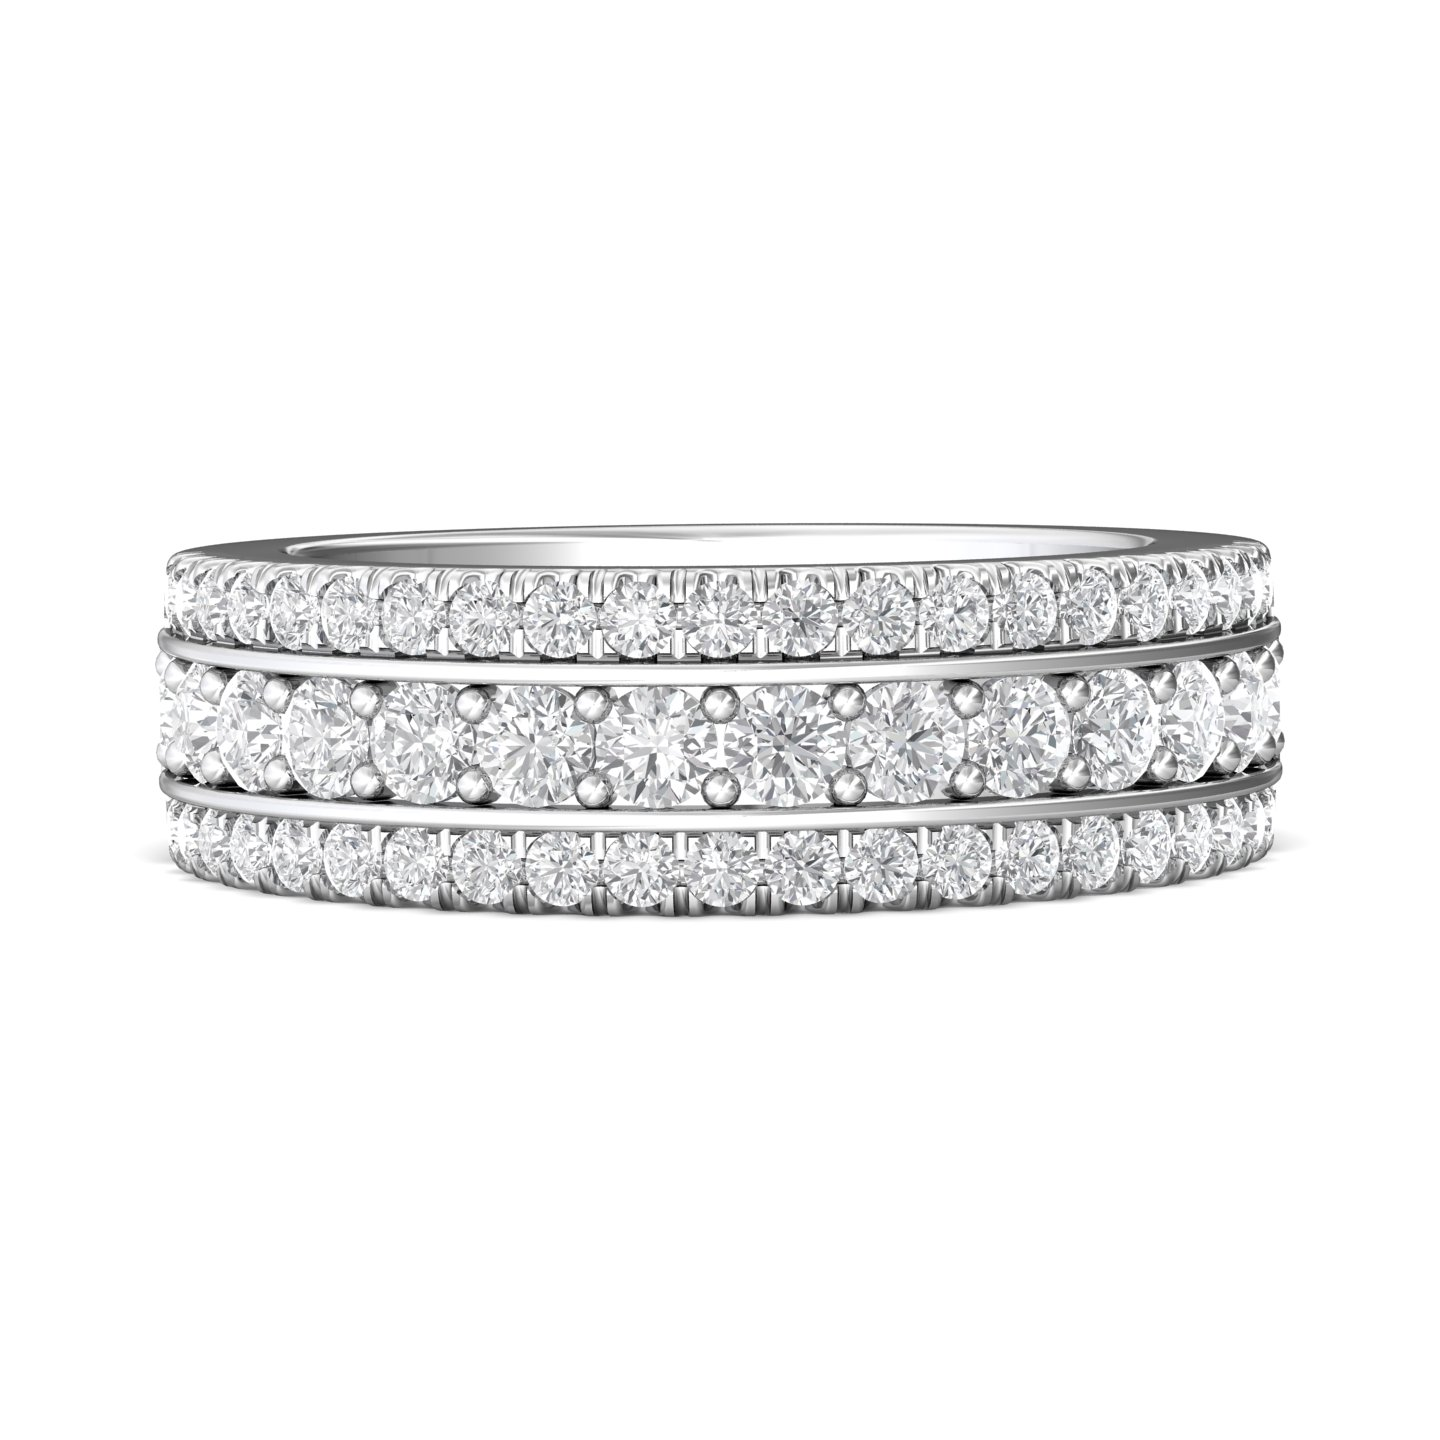 Rings - 14K White Gold FlyerFit Channel Wedding Band